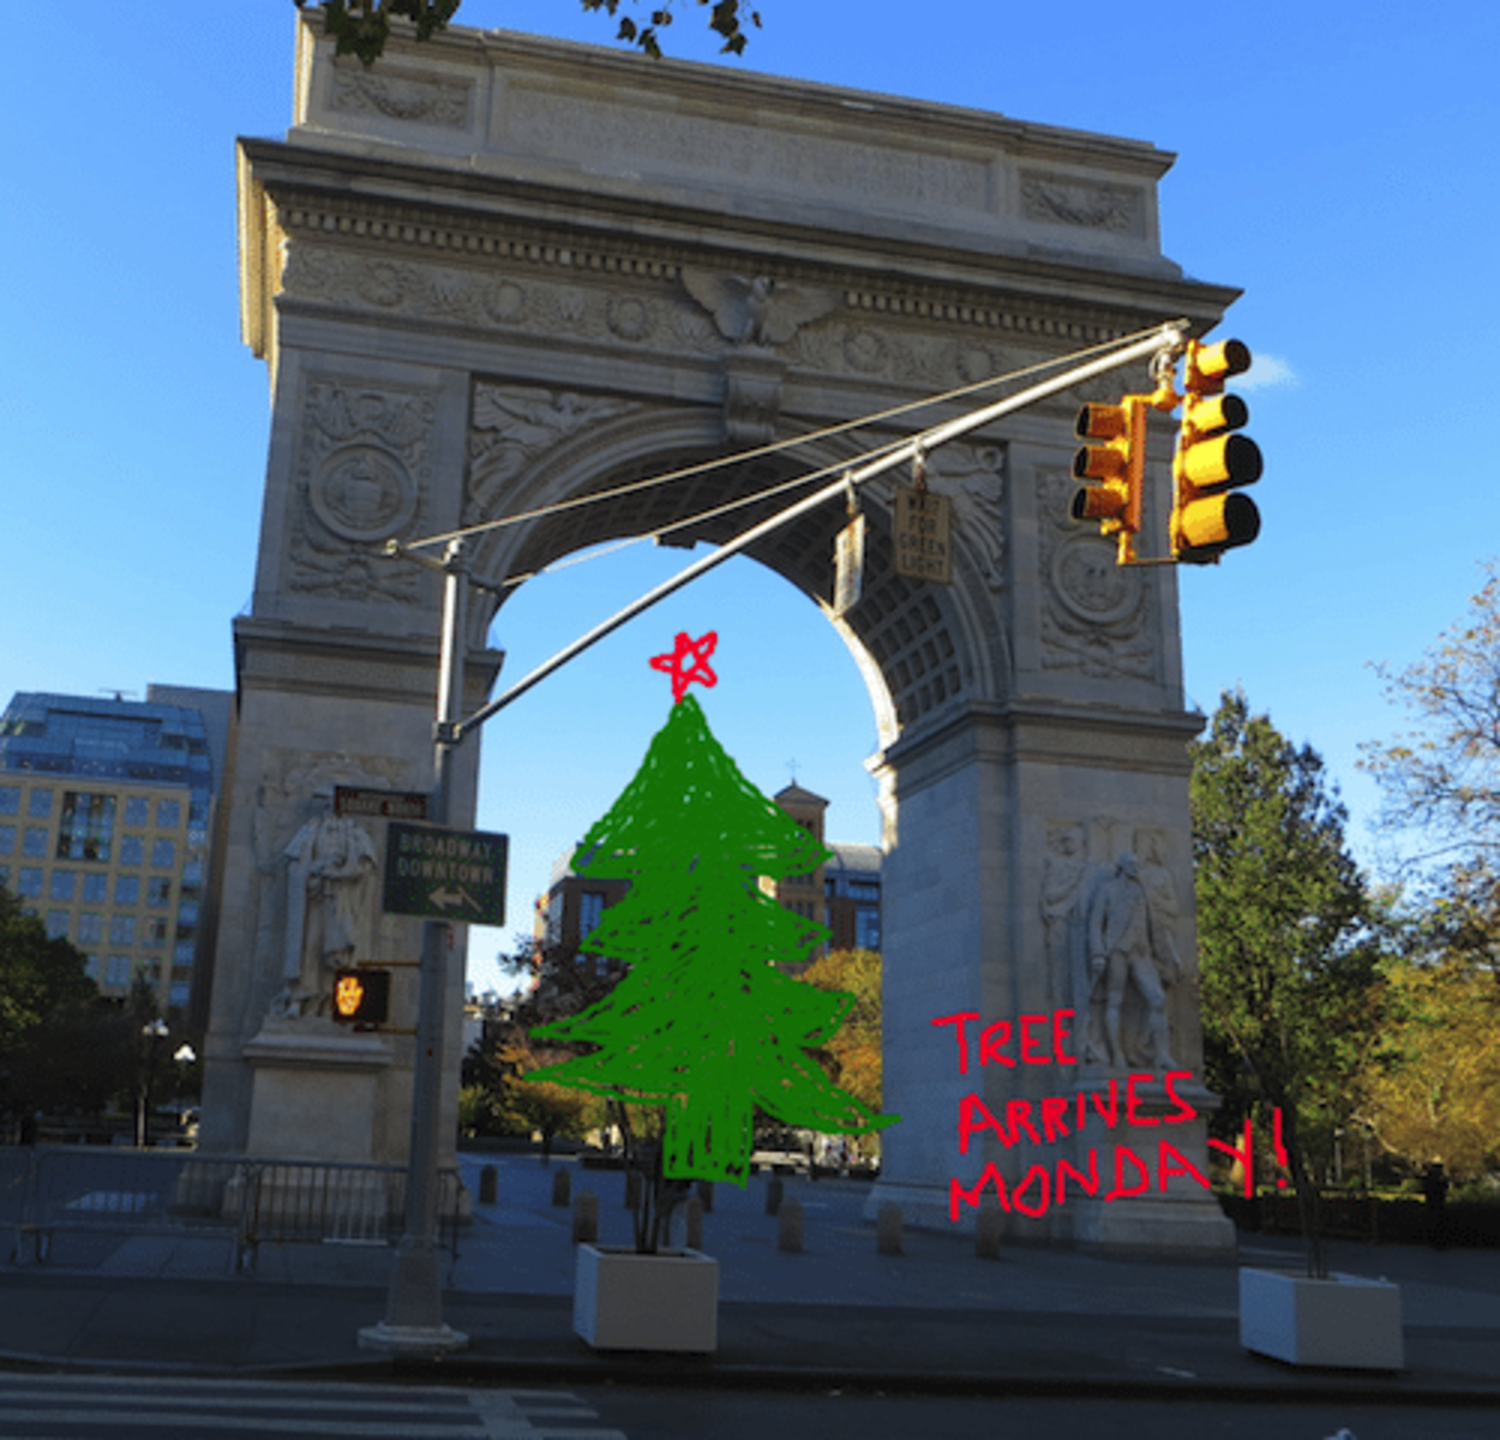 Washington Square Park Christmas Tree Arrives Monday, November 30th | Tree Lighting December 9th